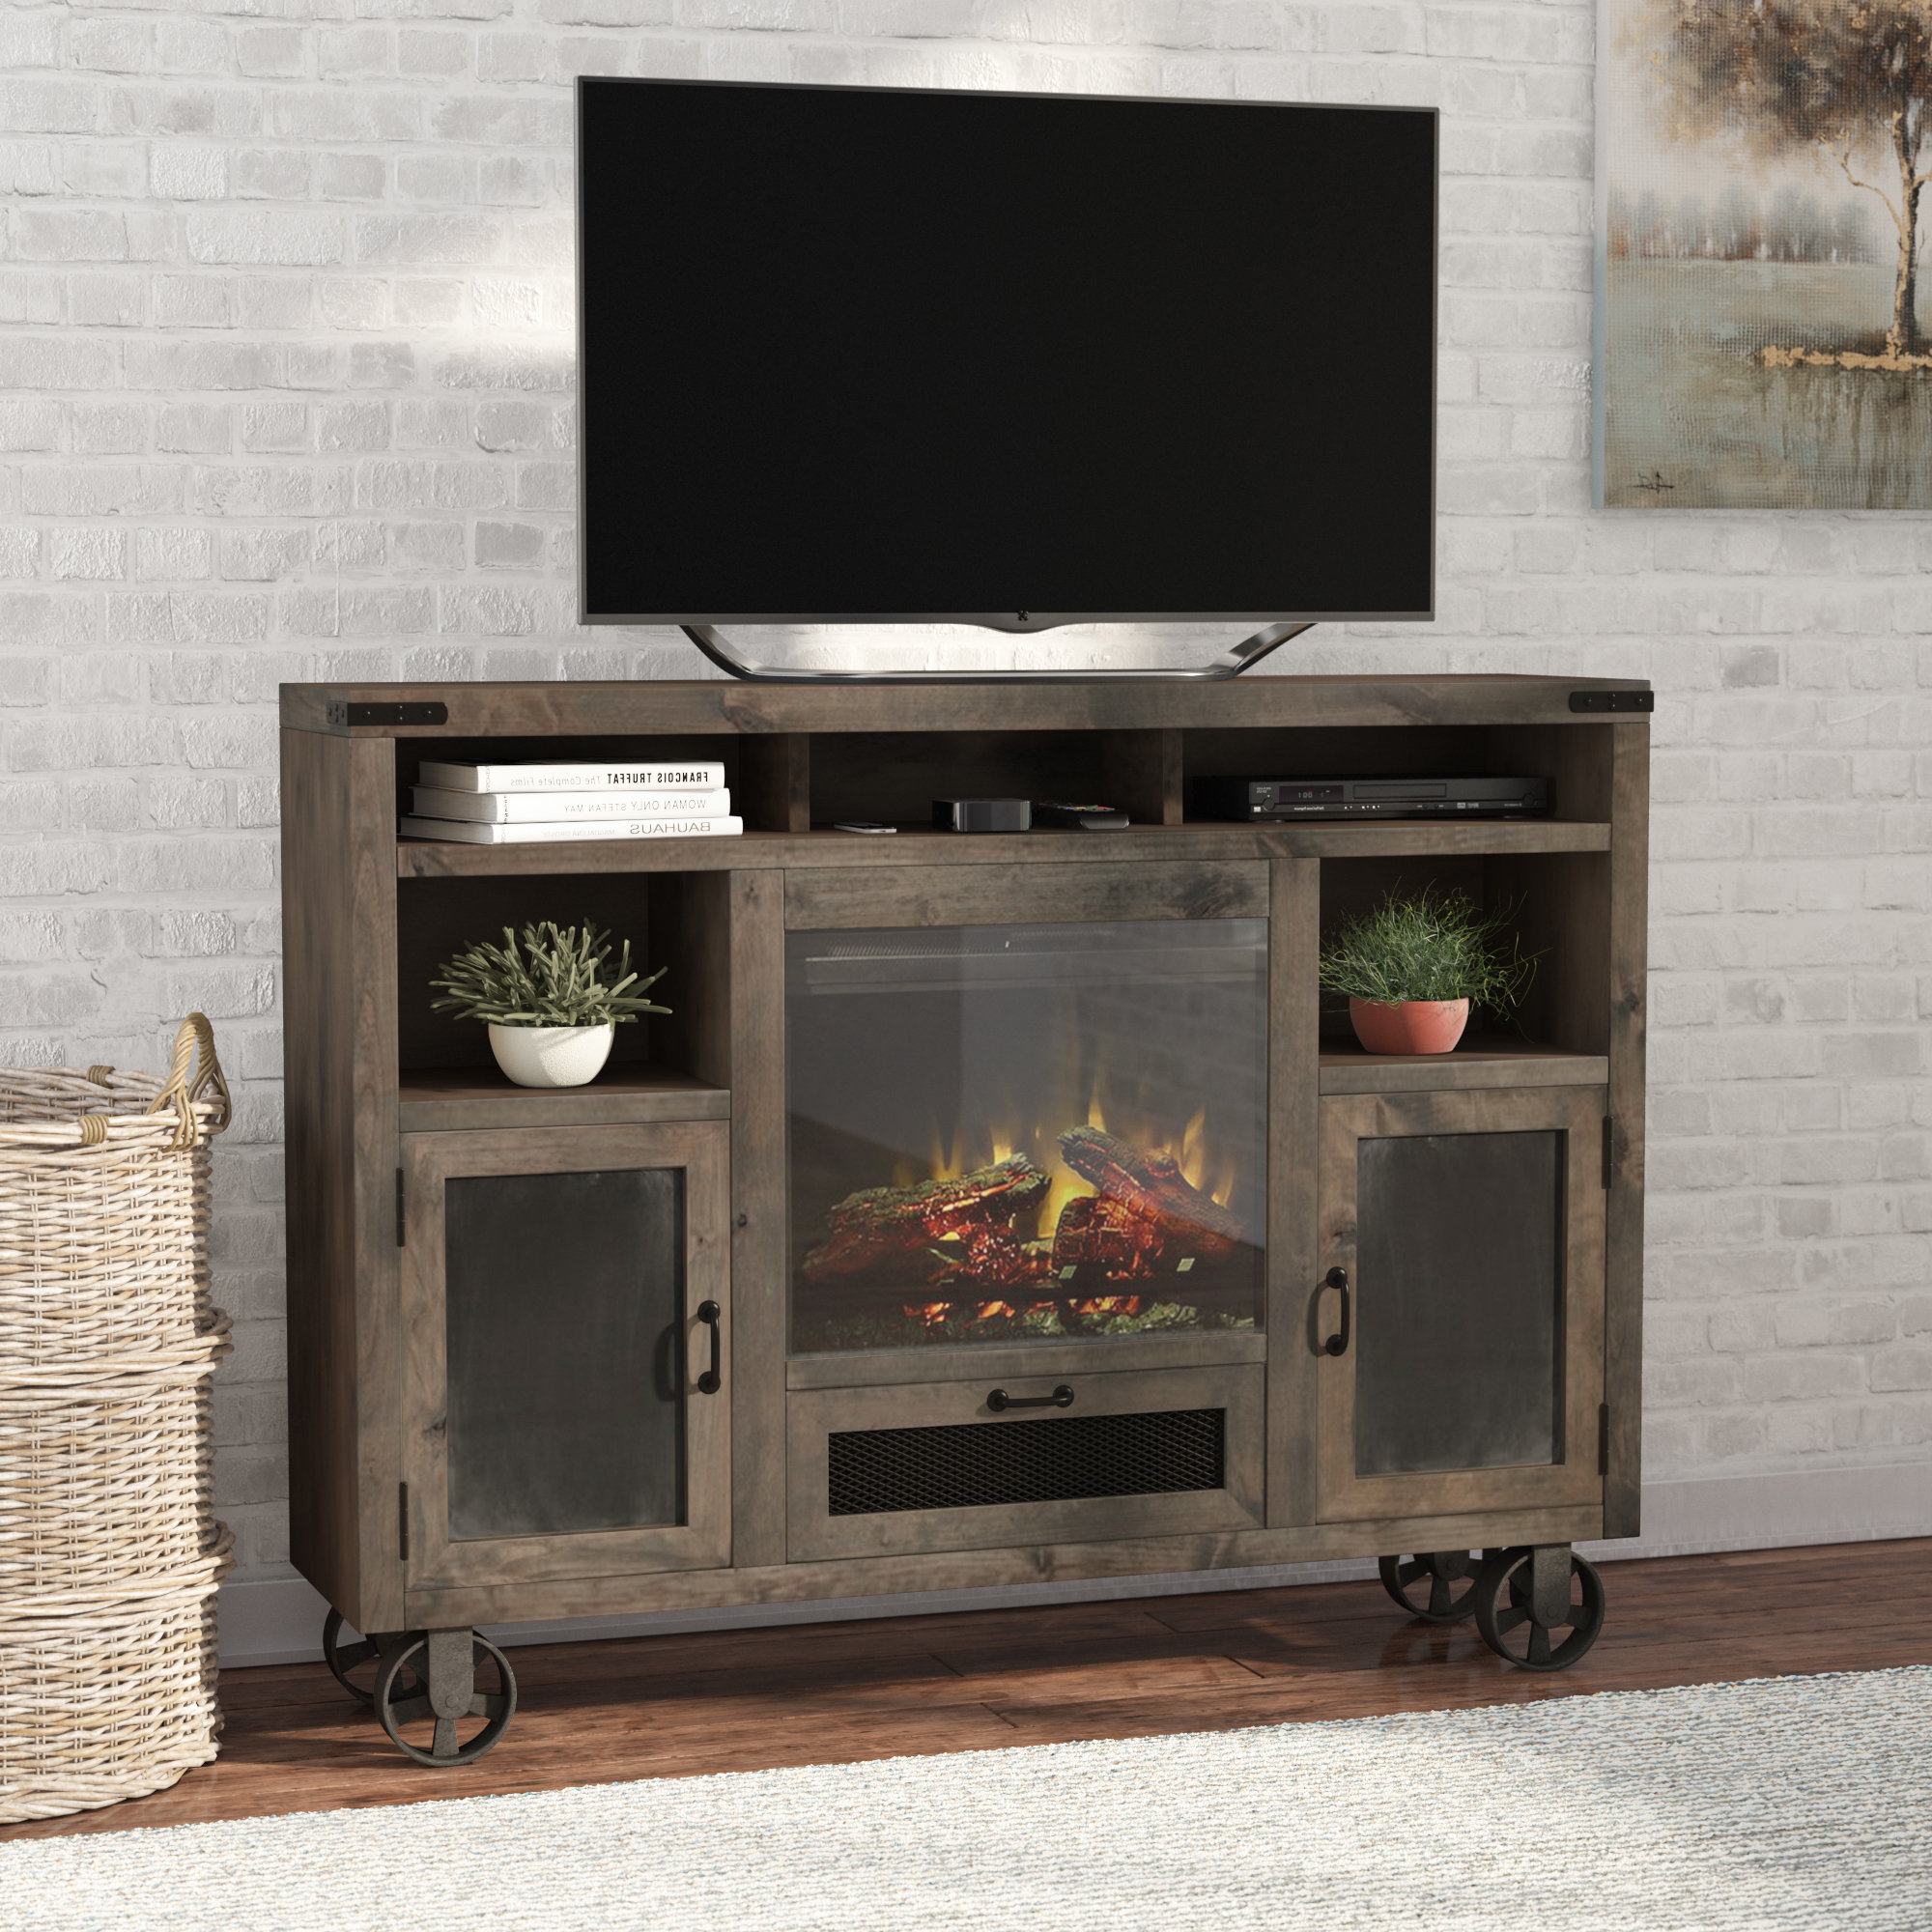 Most Popular Contemporary Tv Cabinets For Flat Screens For Tall Tv Stands You'll Love (View 16 of 20)